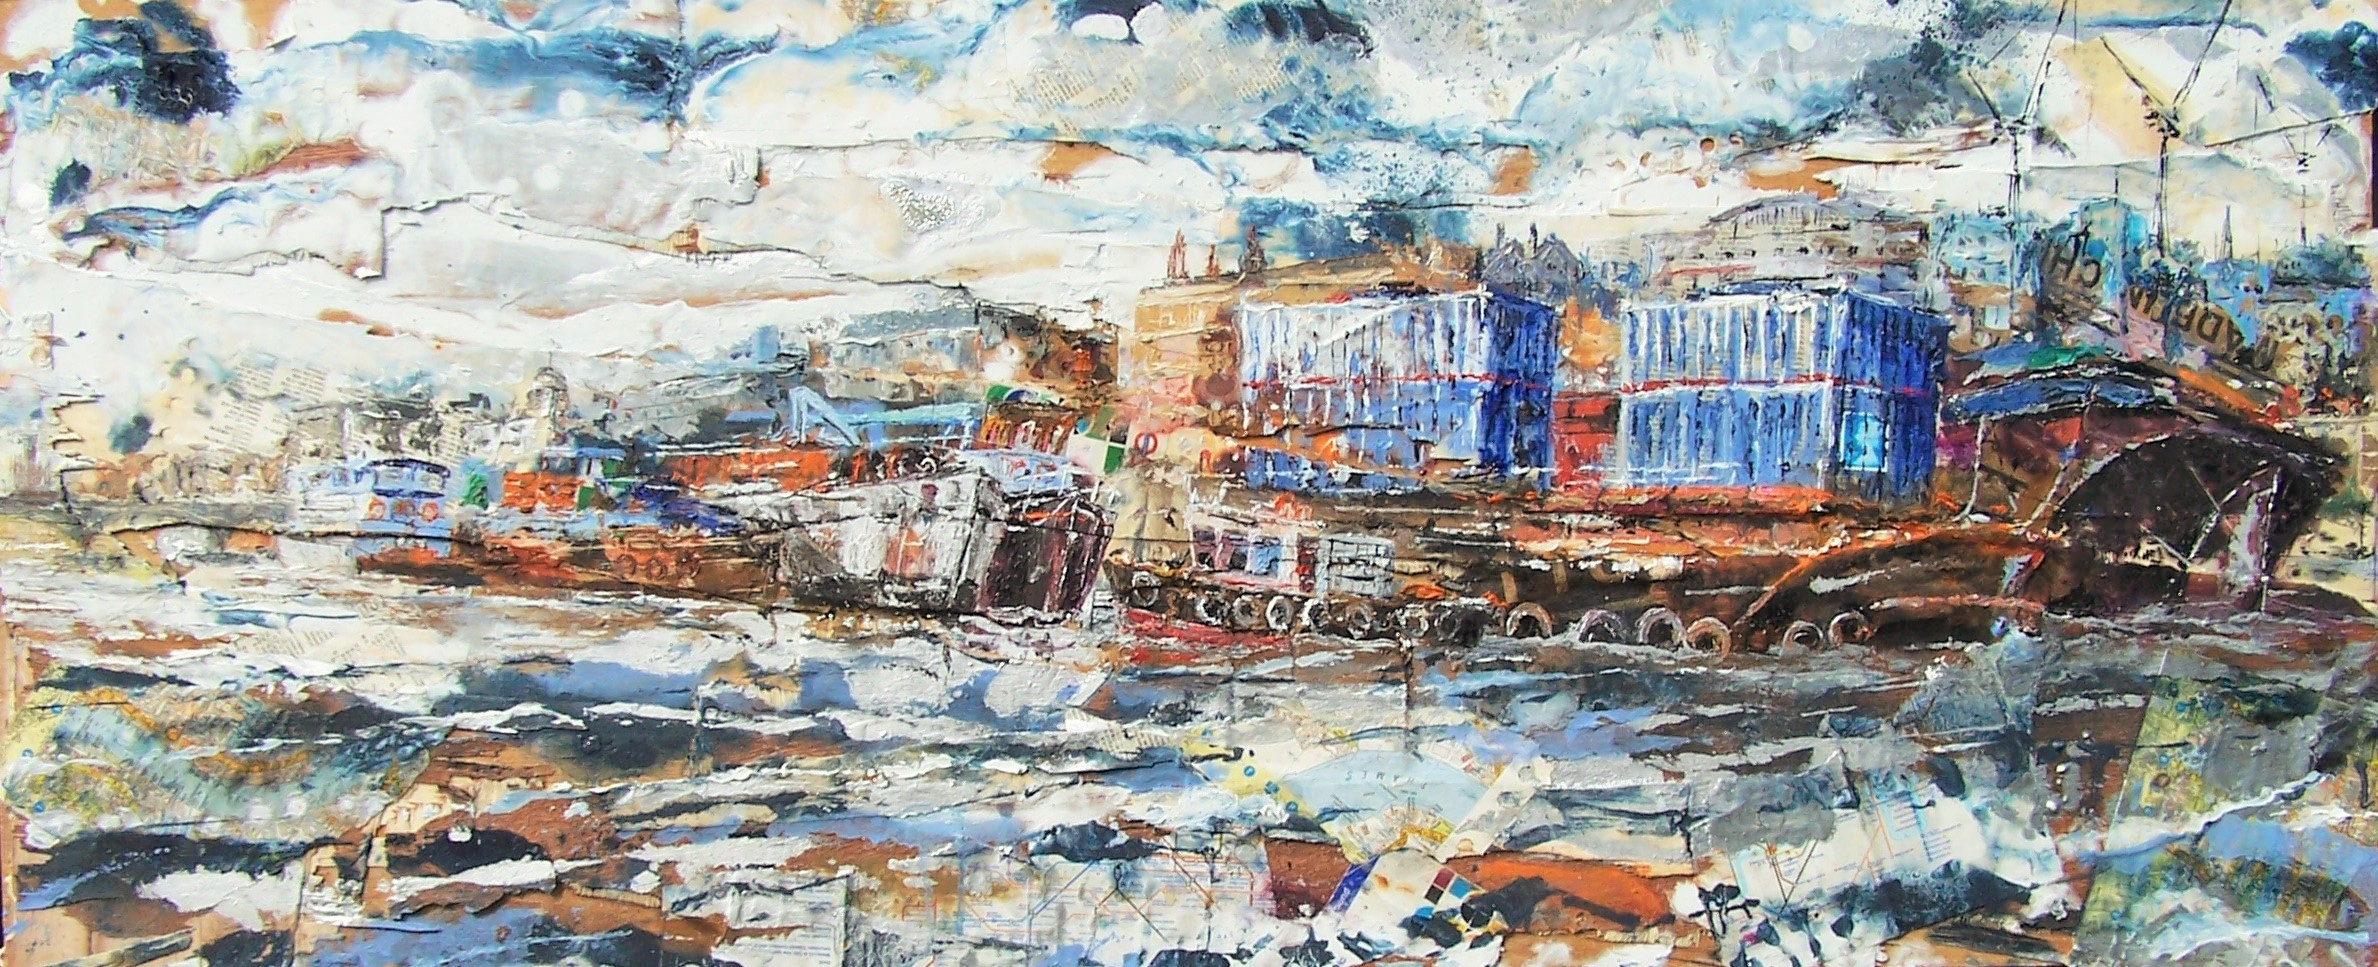 Thames Barges 2, Oil and collage on wood.